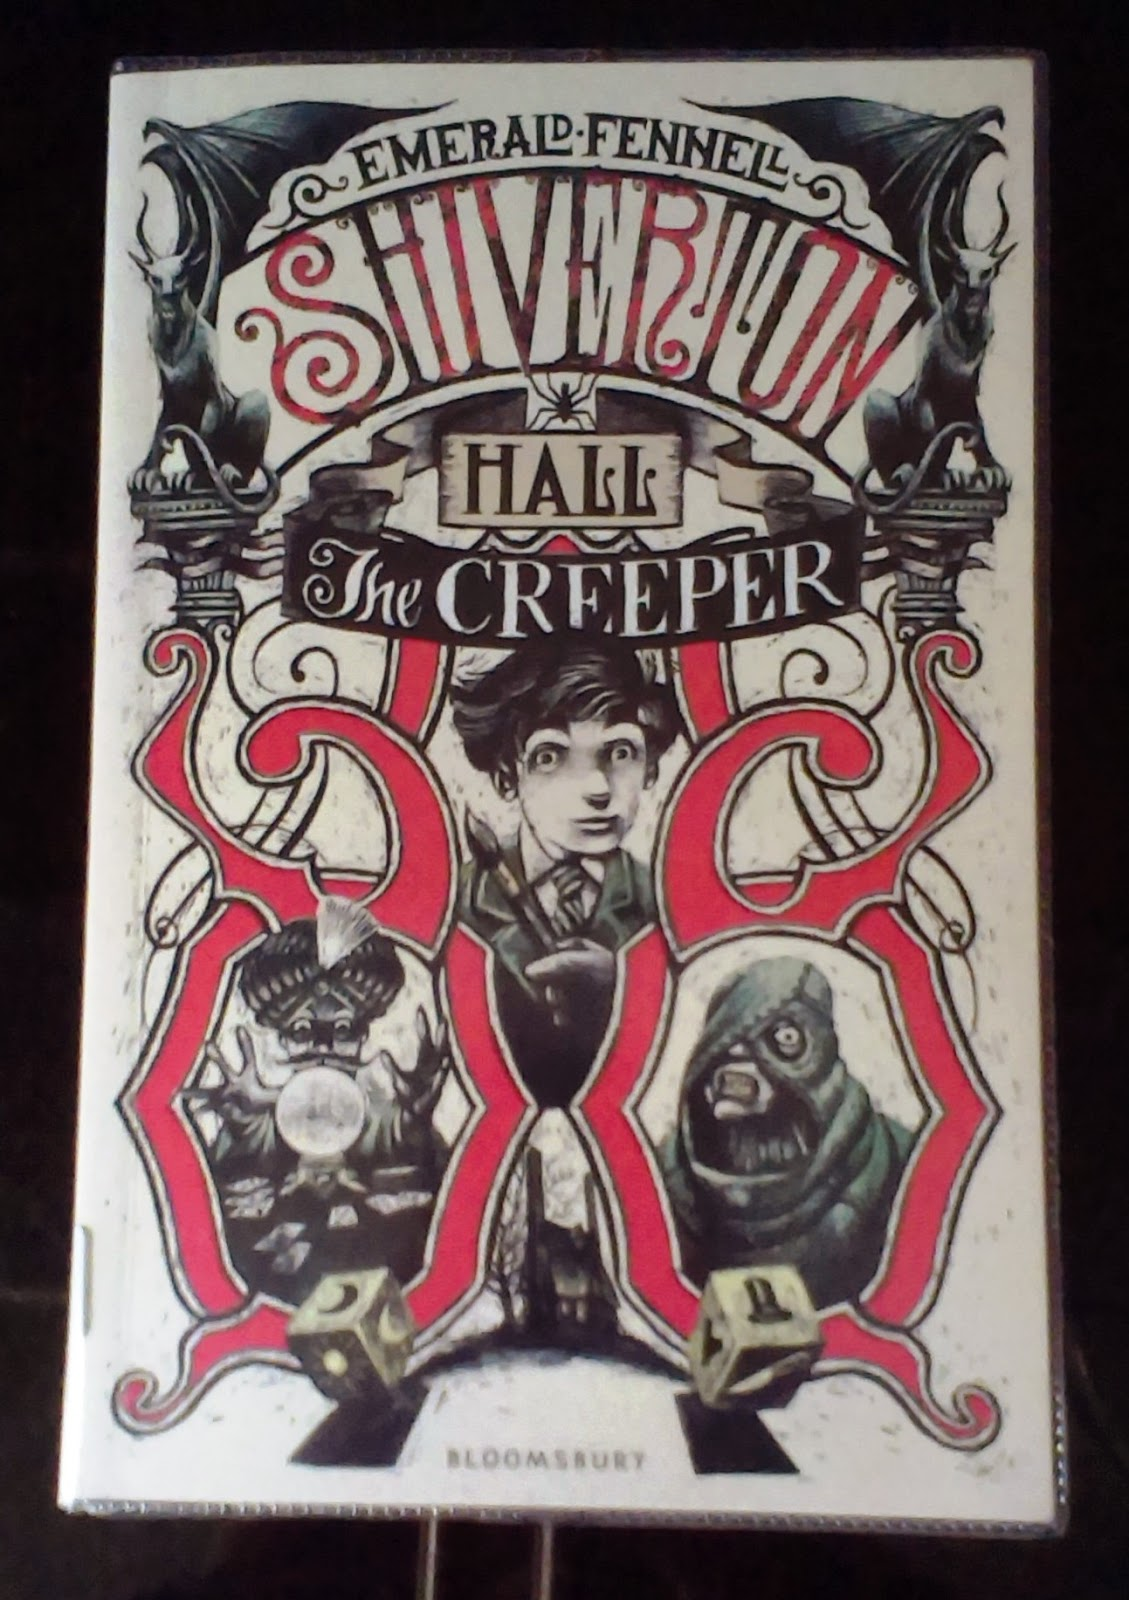 Shiverton Hall: The Creeper by Emerald Fennell